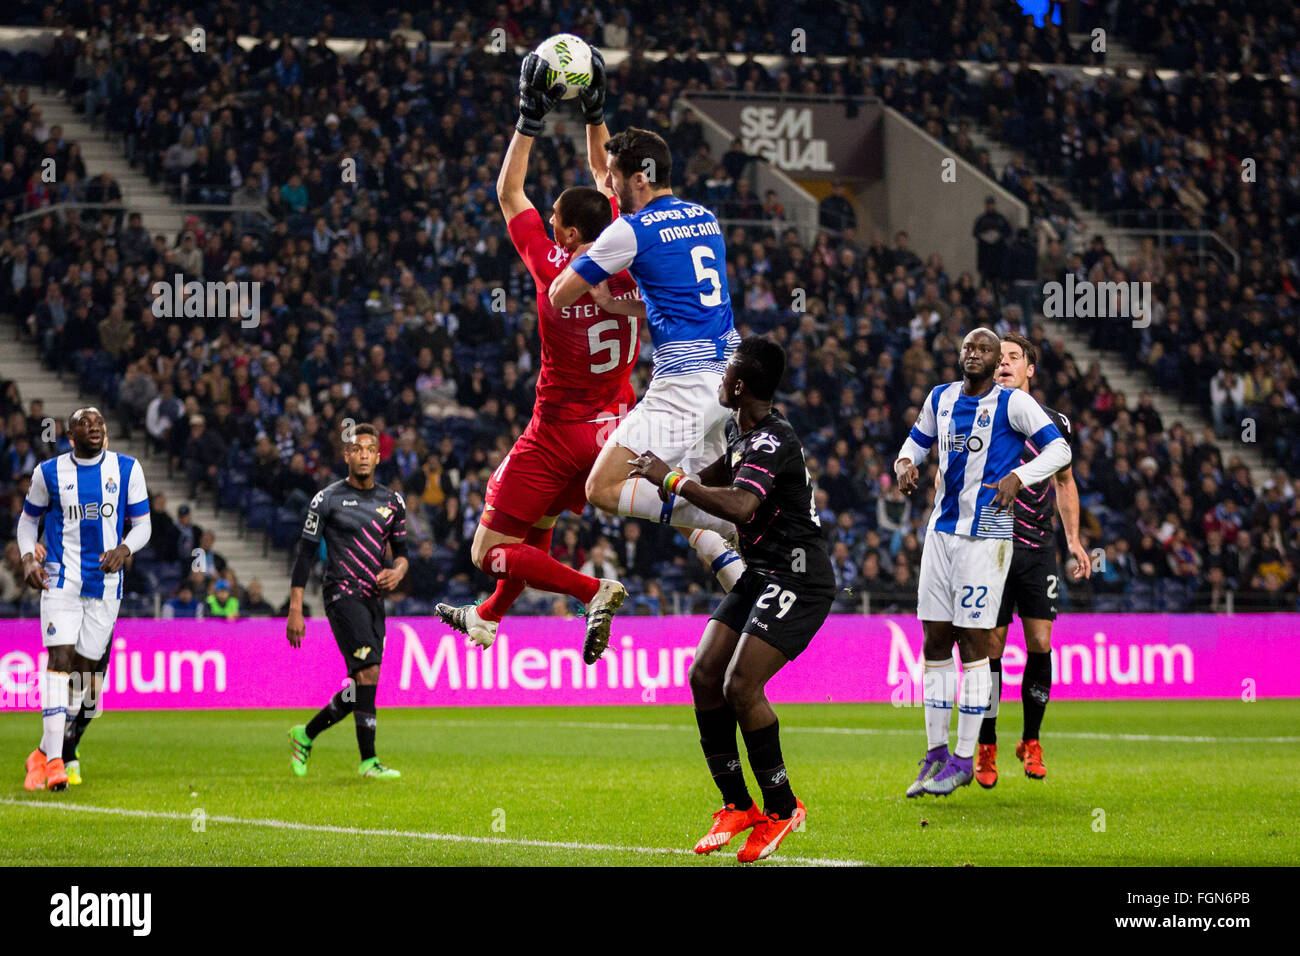 Dragon Stadium, Portugal. 21st February, 2016. FC Porto's player Marcano during the Premier League 2015/16 match - Stock Image